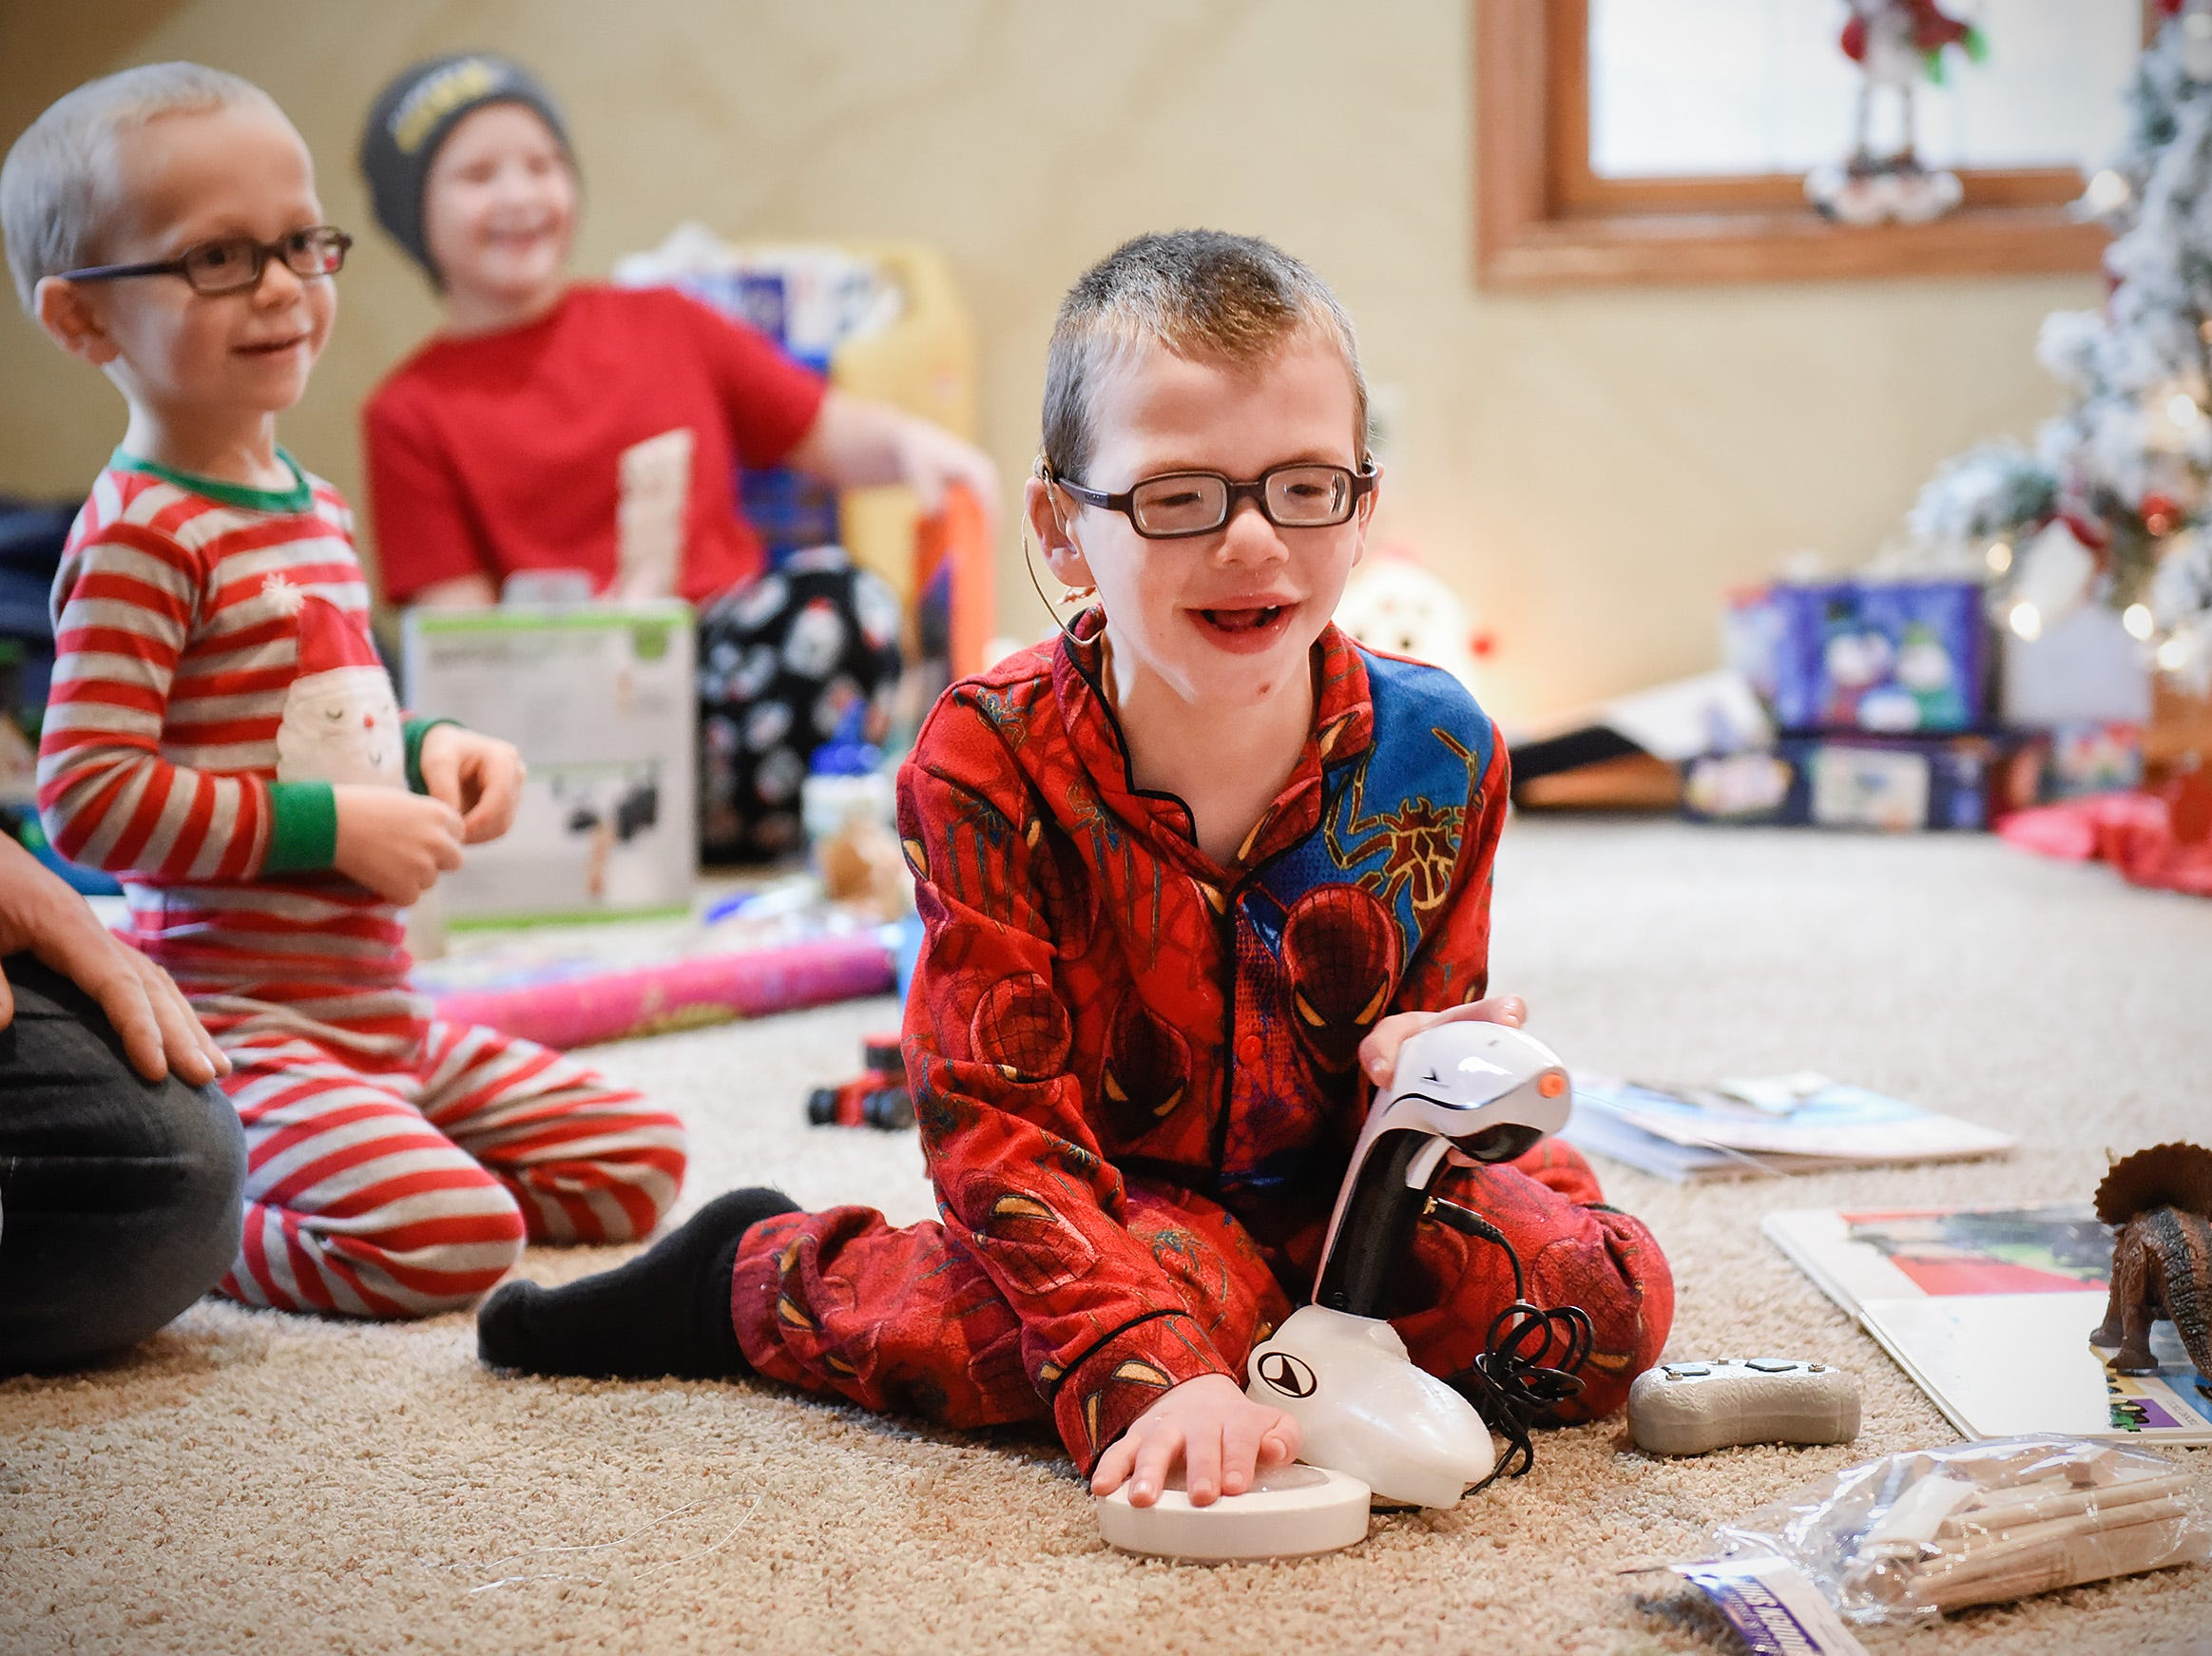 Camran Schneider, 6, plays with his new adapted squirt gun which was an special gift from Santa and Mrs. Claus Tuesday, Dec. 25, at his home in Kimball.